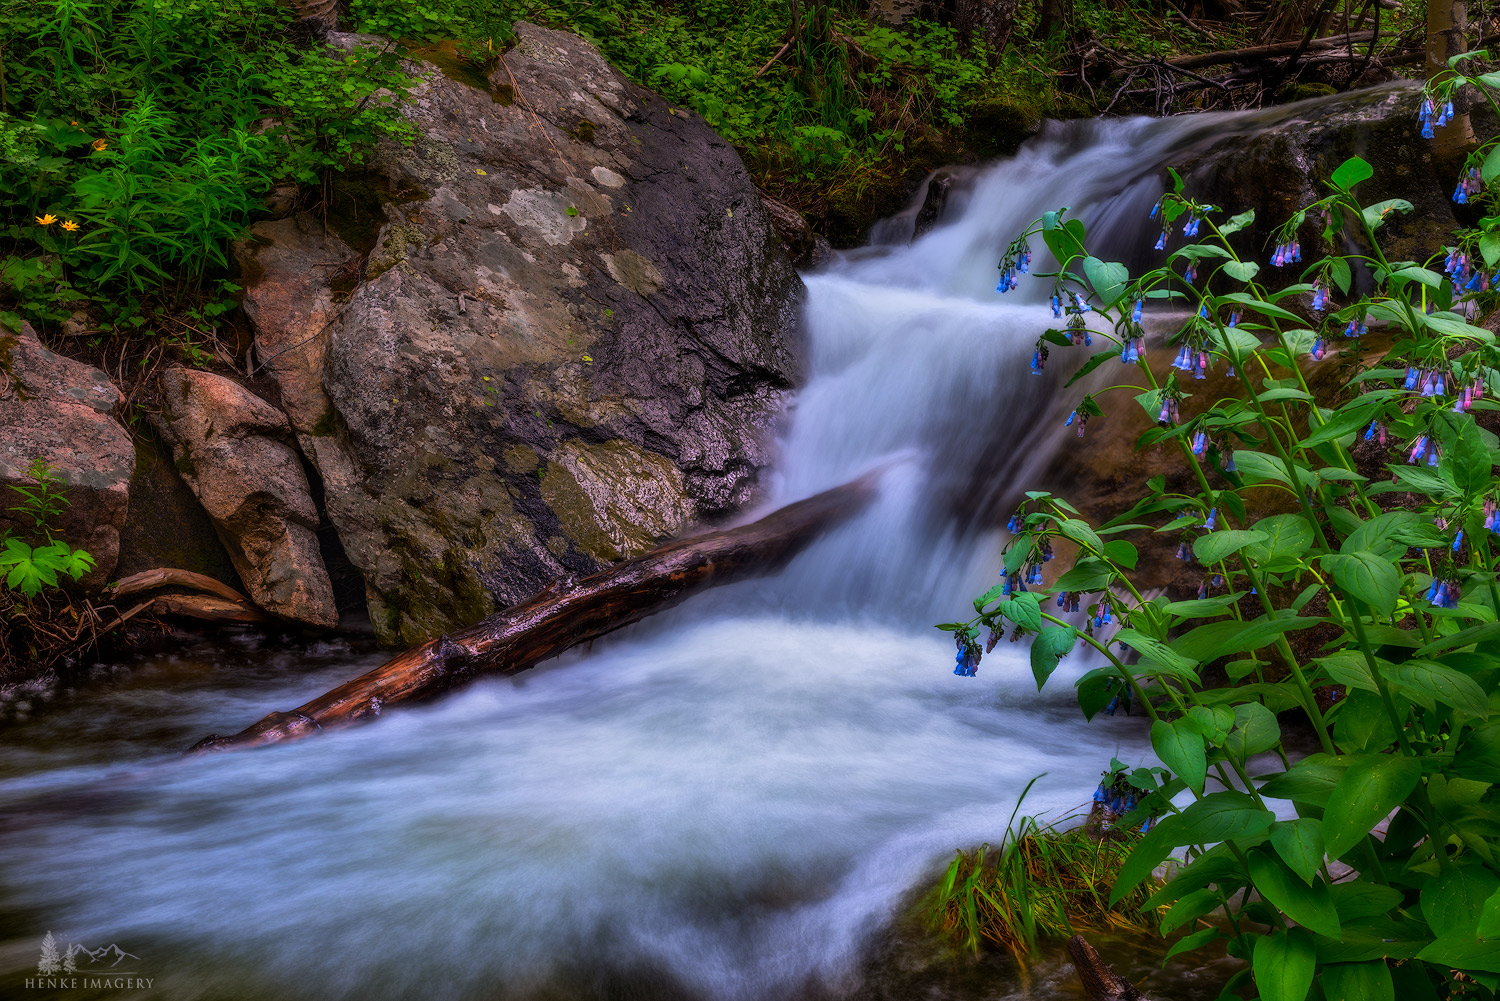 A peaceful view of a small cascading stream in Rocky Mountain National Park, Colorado.